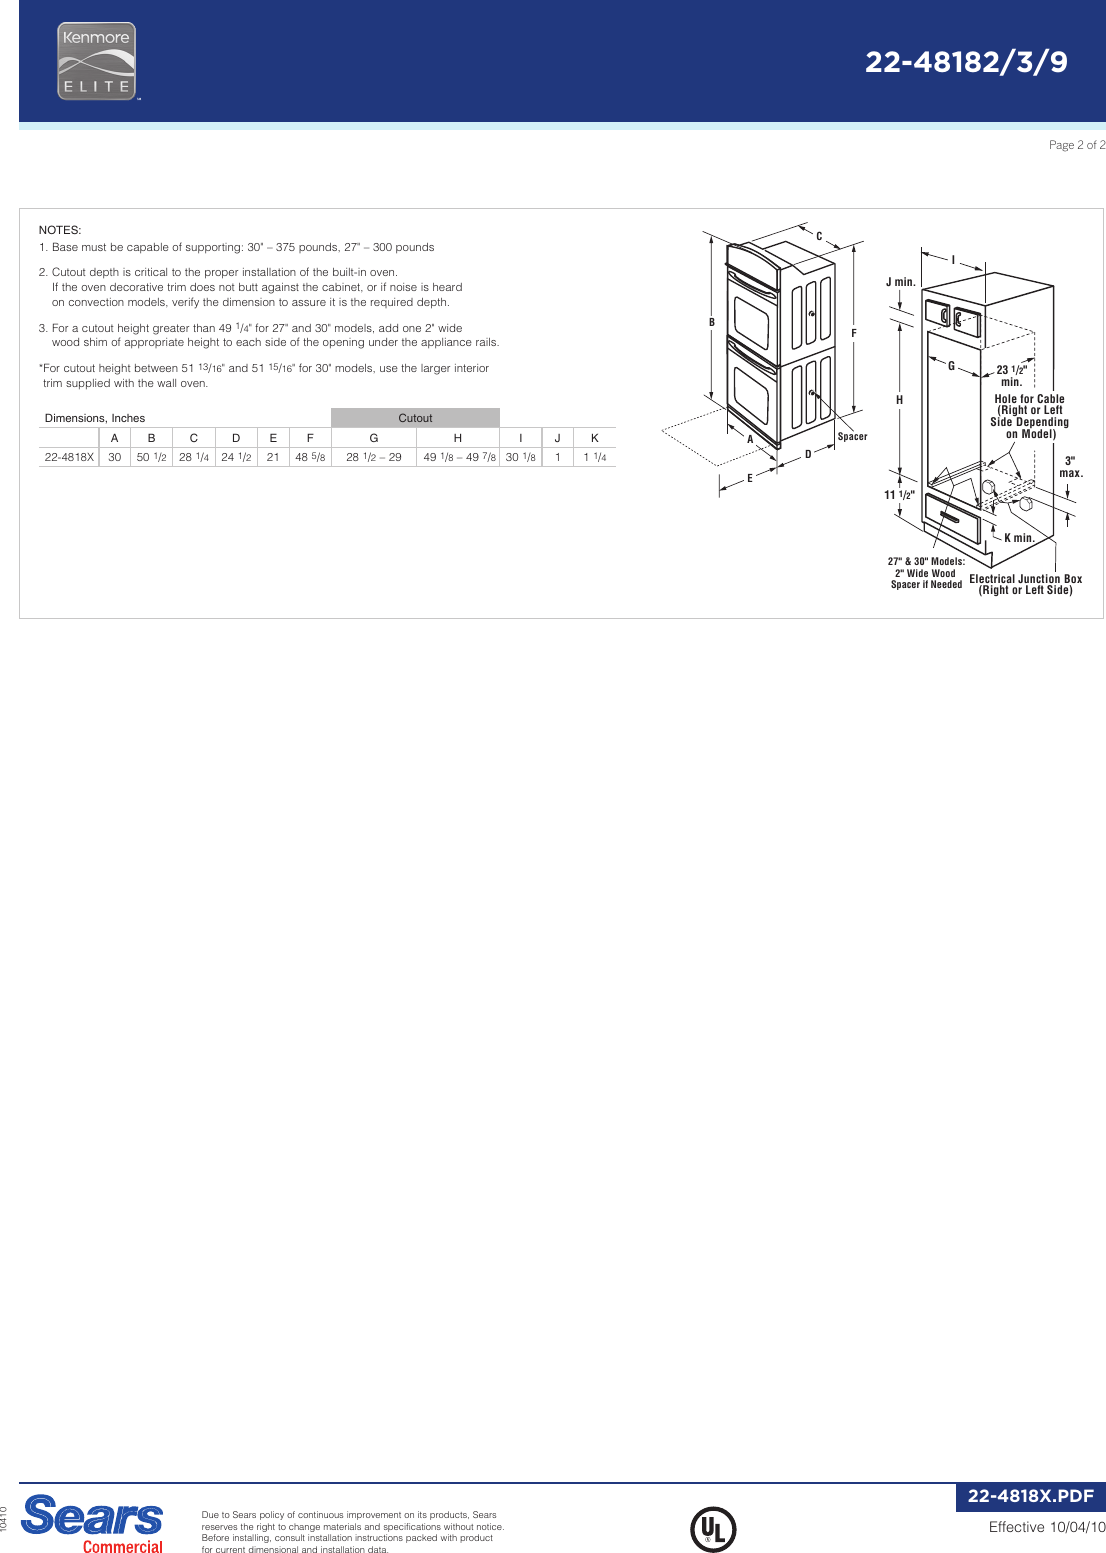 Kenmore Elite Double Wall Oven Installation Instructions Nemetas Built In Wiring 30